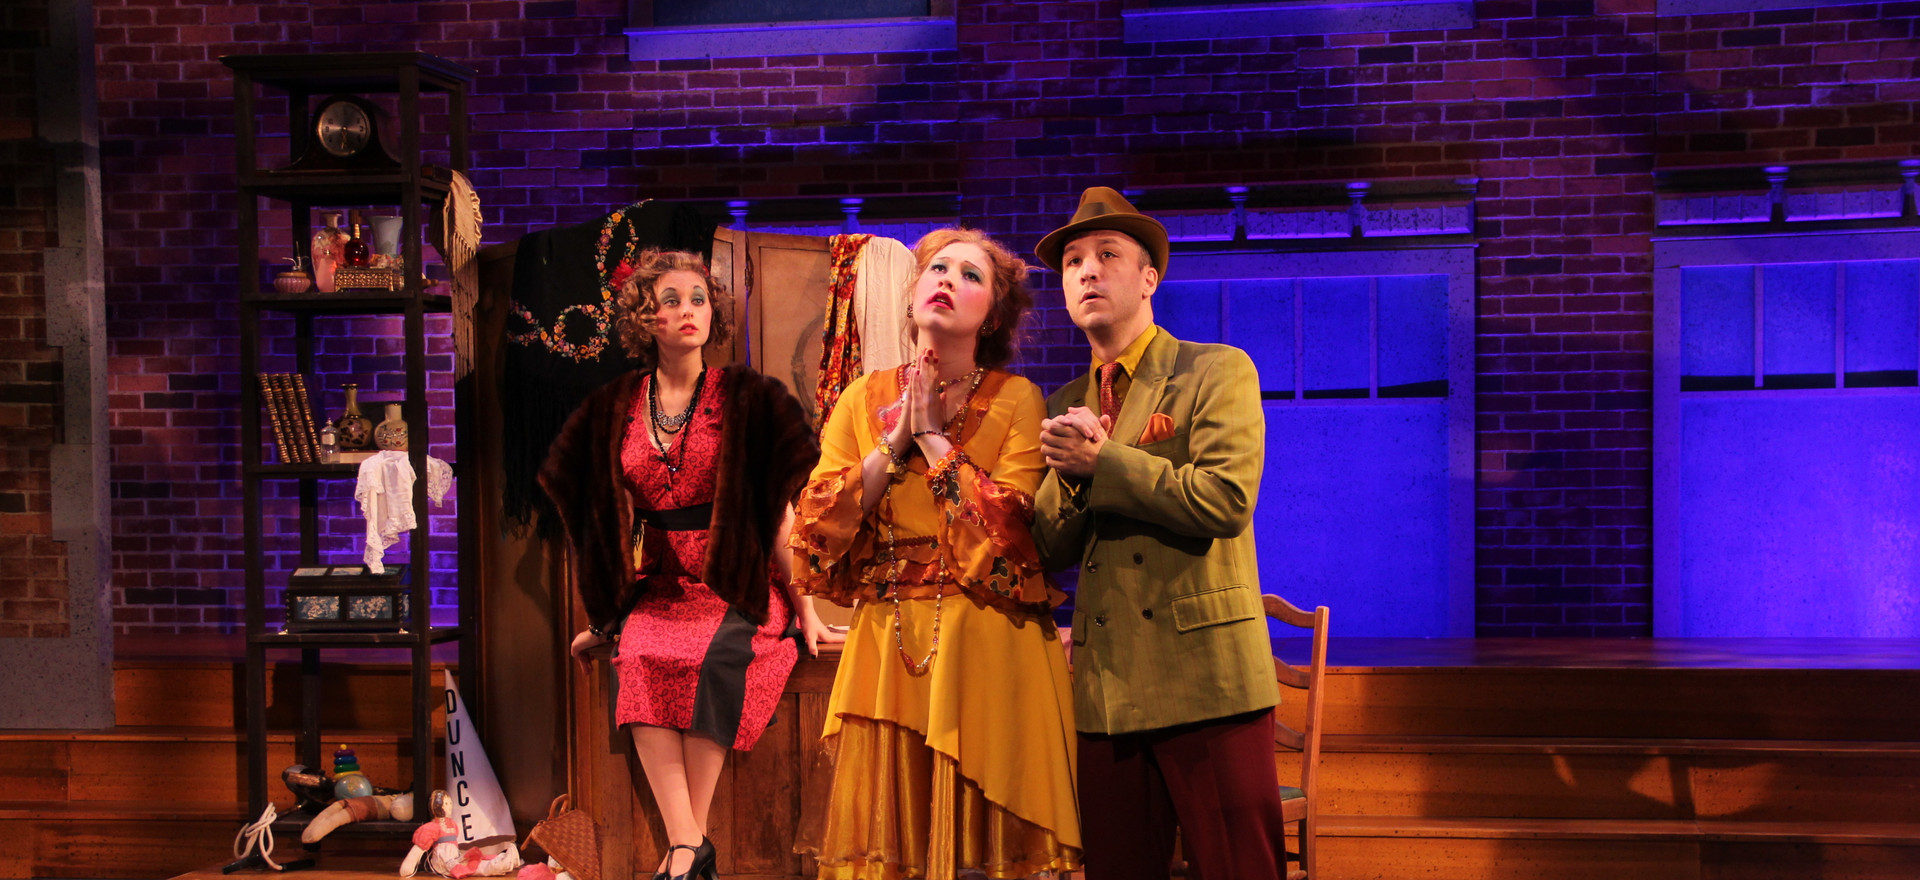 Hannigan, Rooster, and Lily St Regis